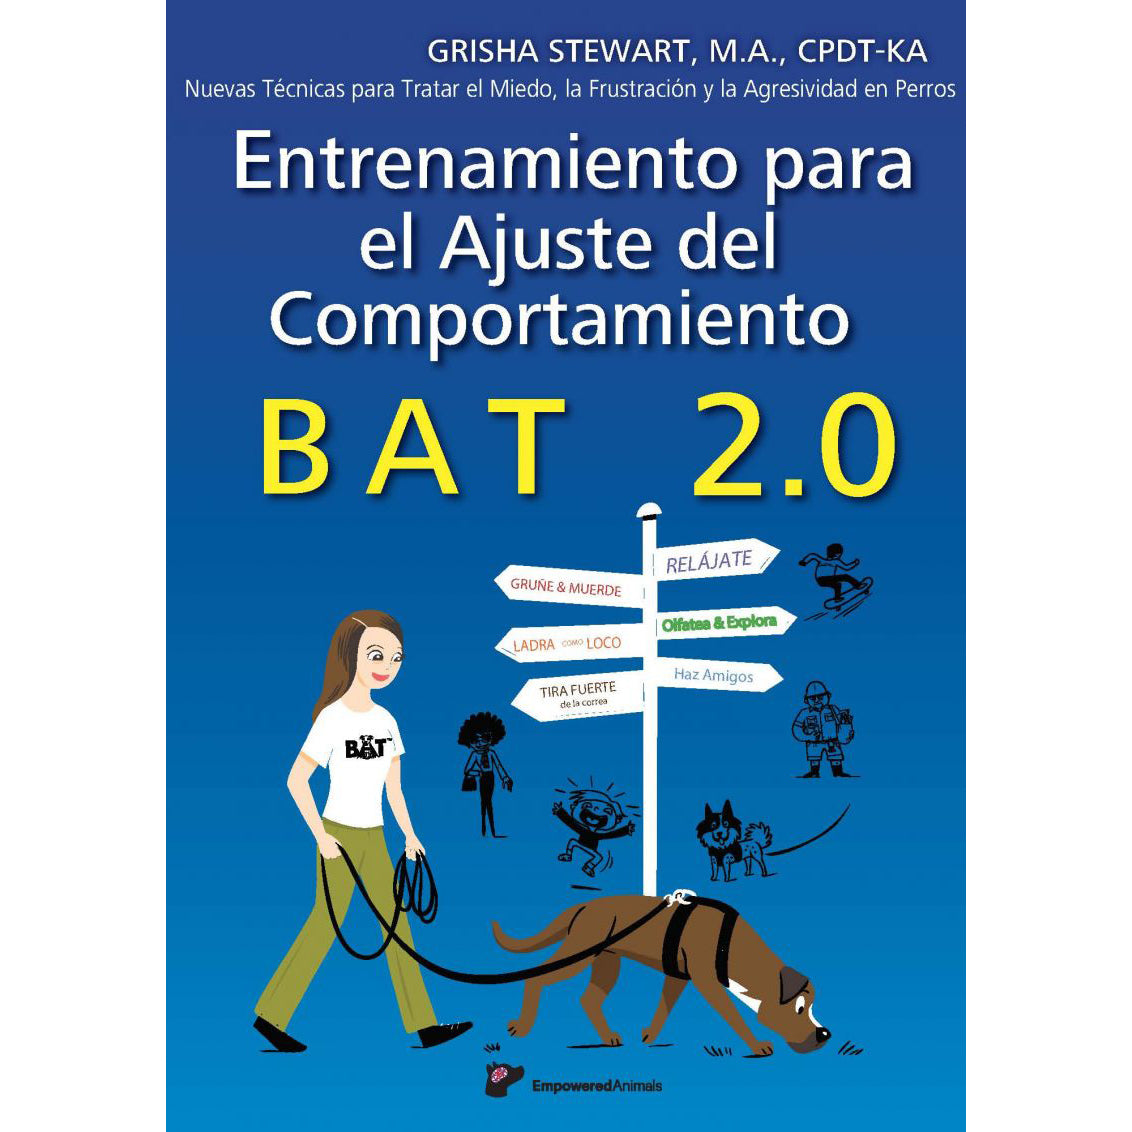 BAT 2.0 Book for Dog Aggression, Frustration, & Fear: Wholesale Orders (Spanish, Sets of 20)